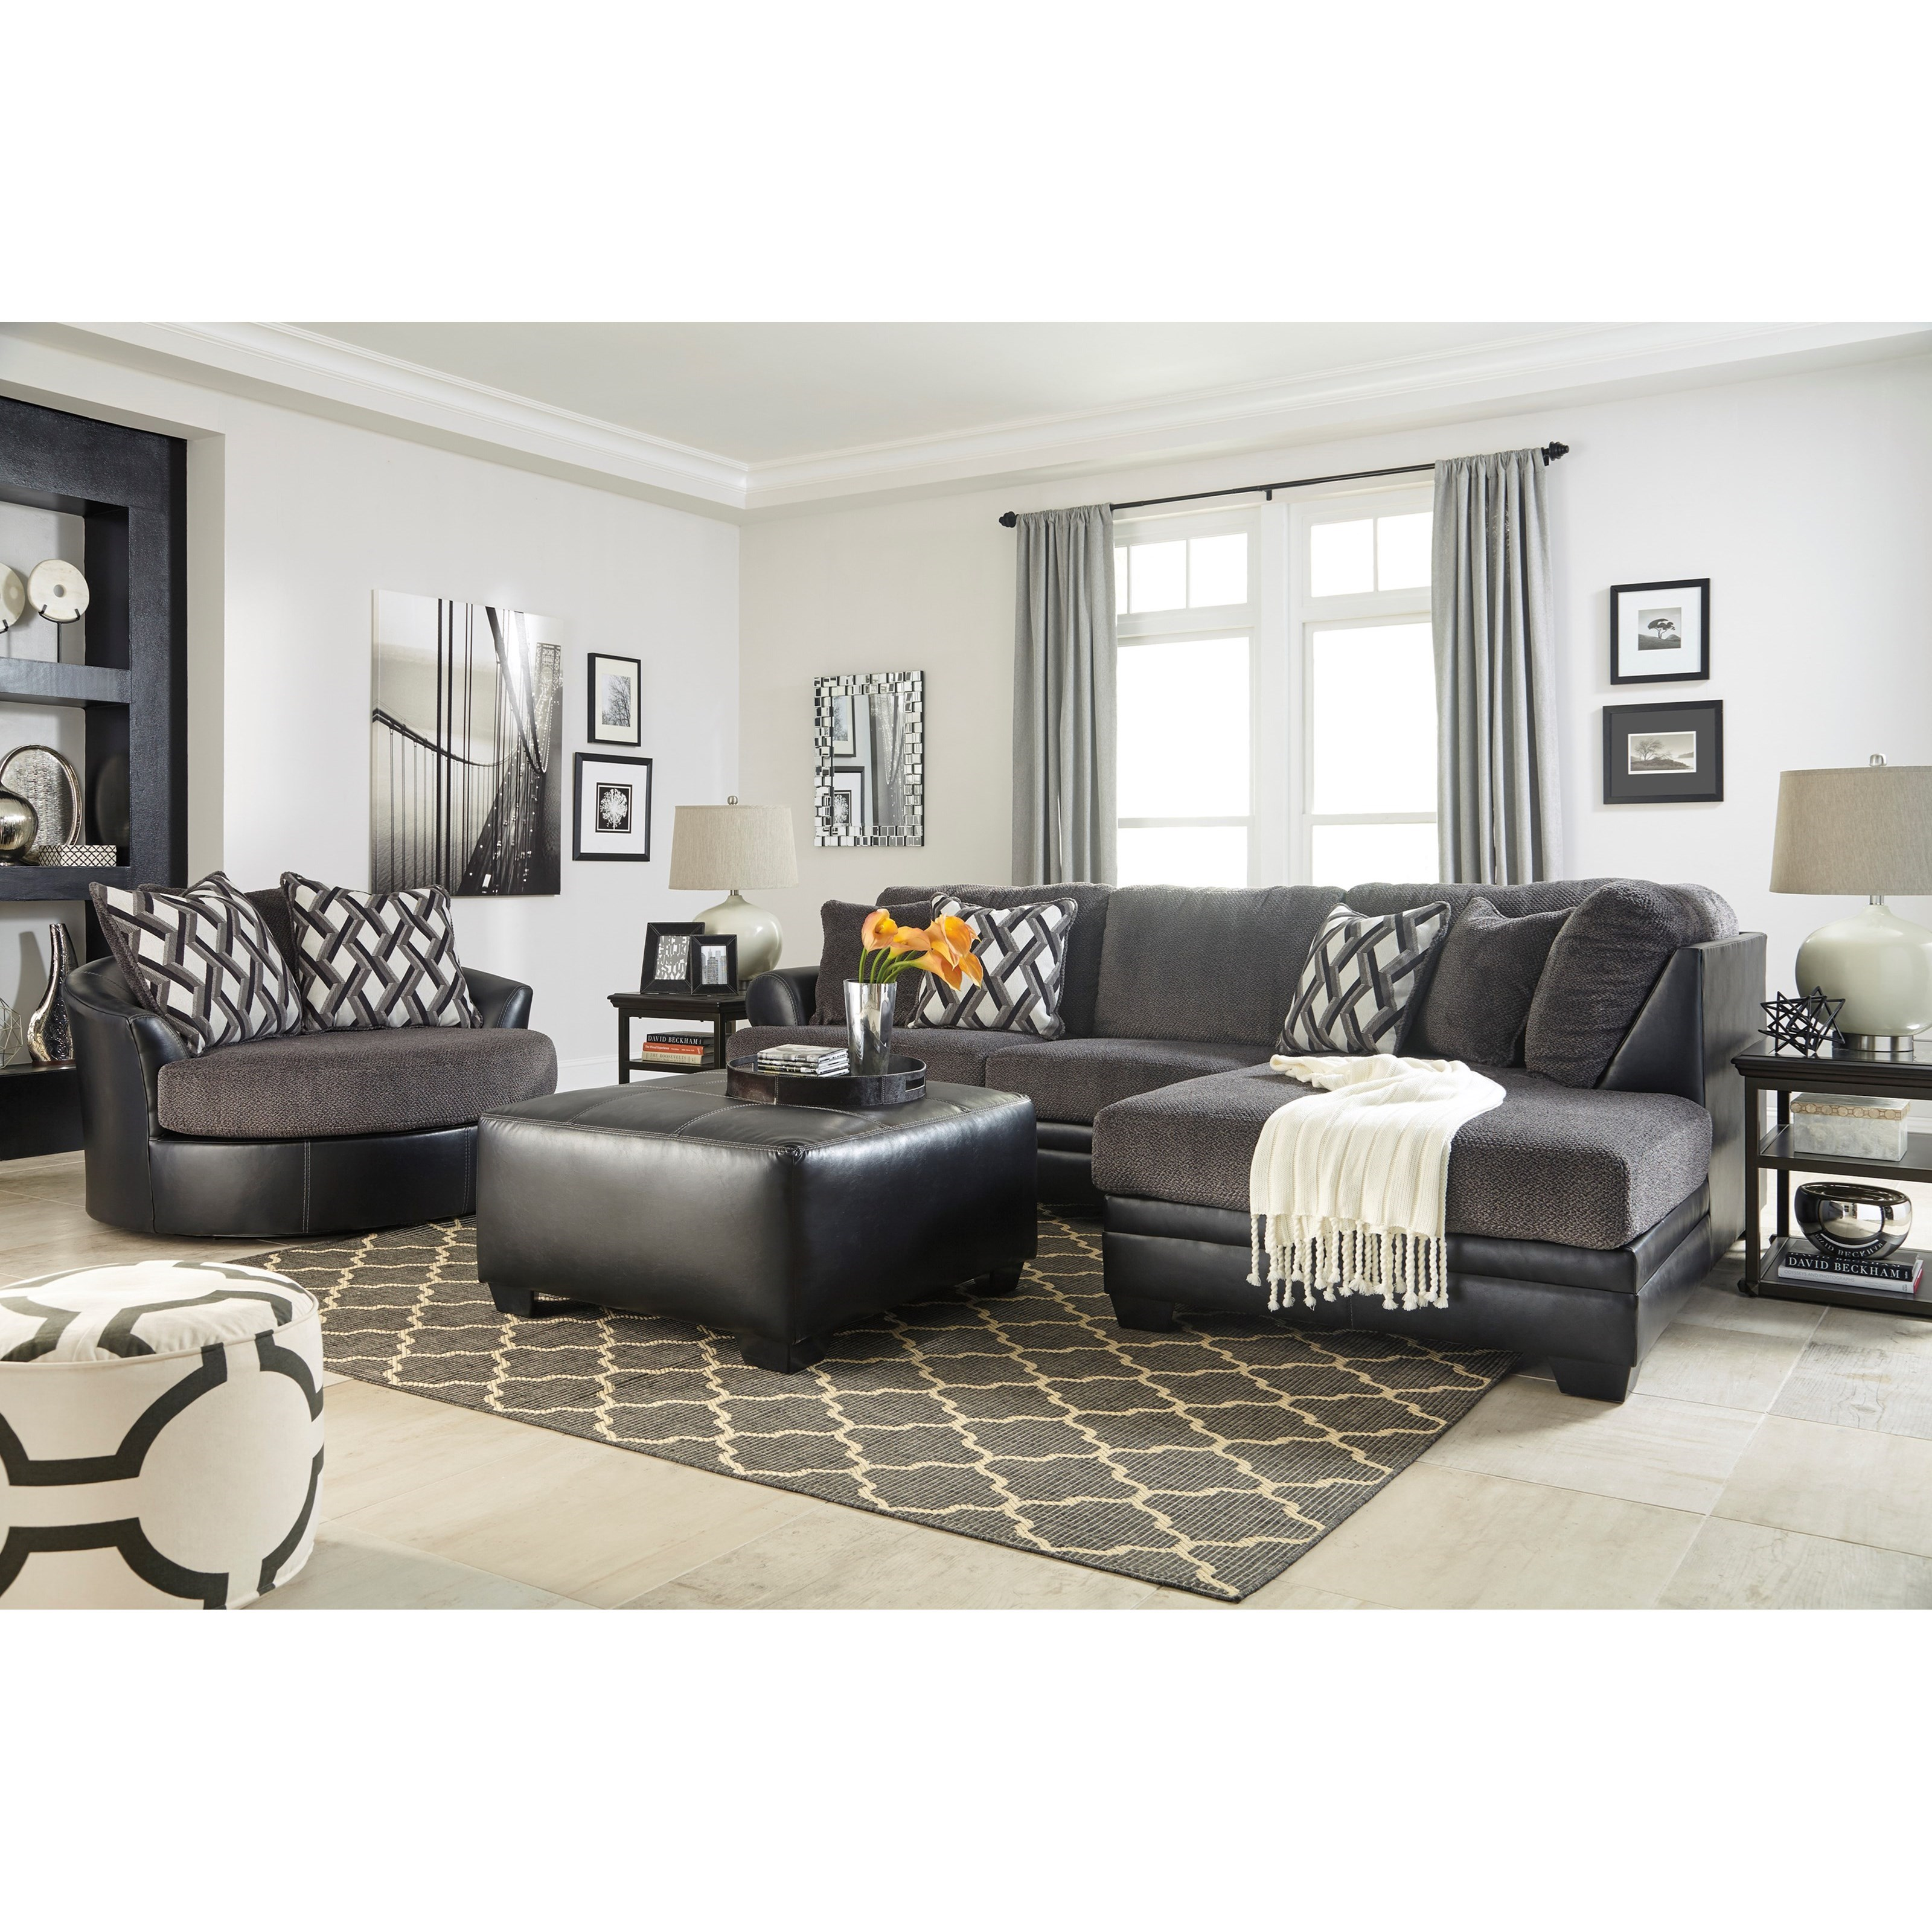 Benchcraft Kumasi 2 Piece Fabric Faux Leather Sectional